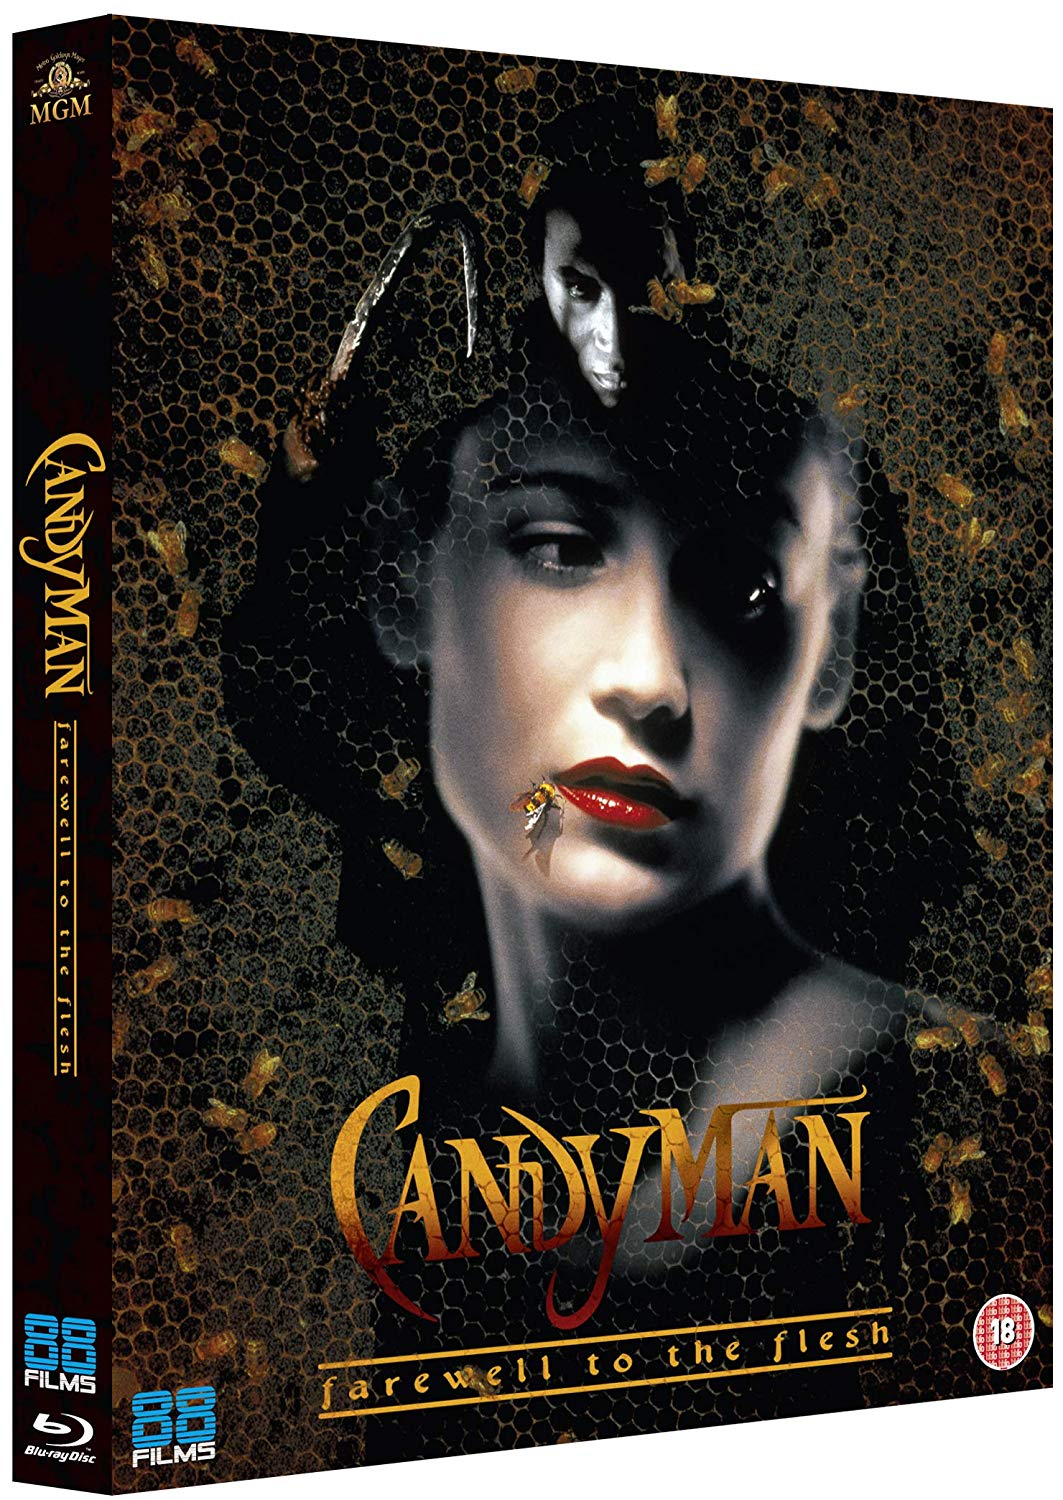 Candyman Farewell to the Flesh UK Blu-Ray